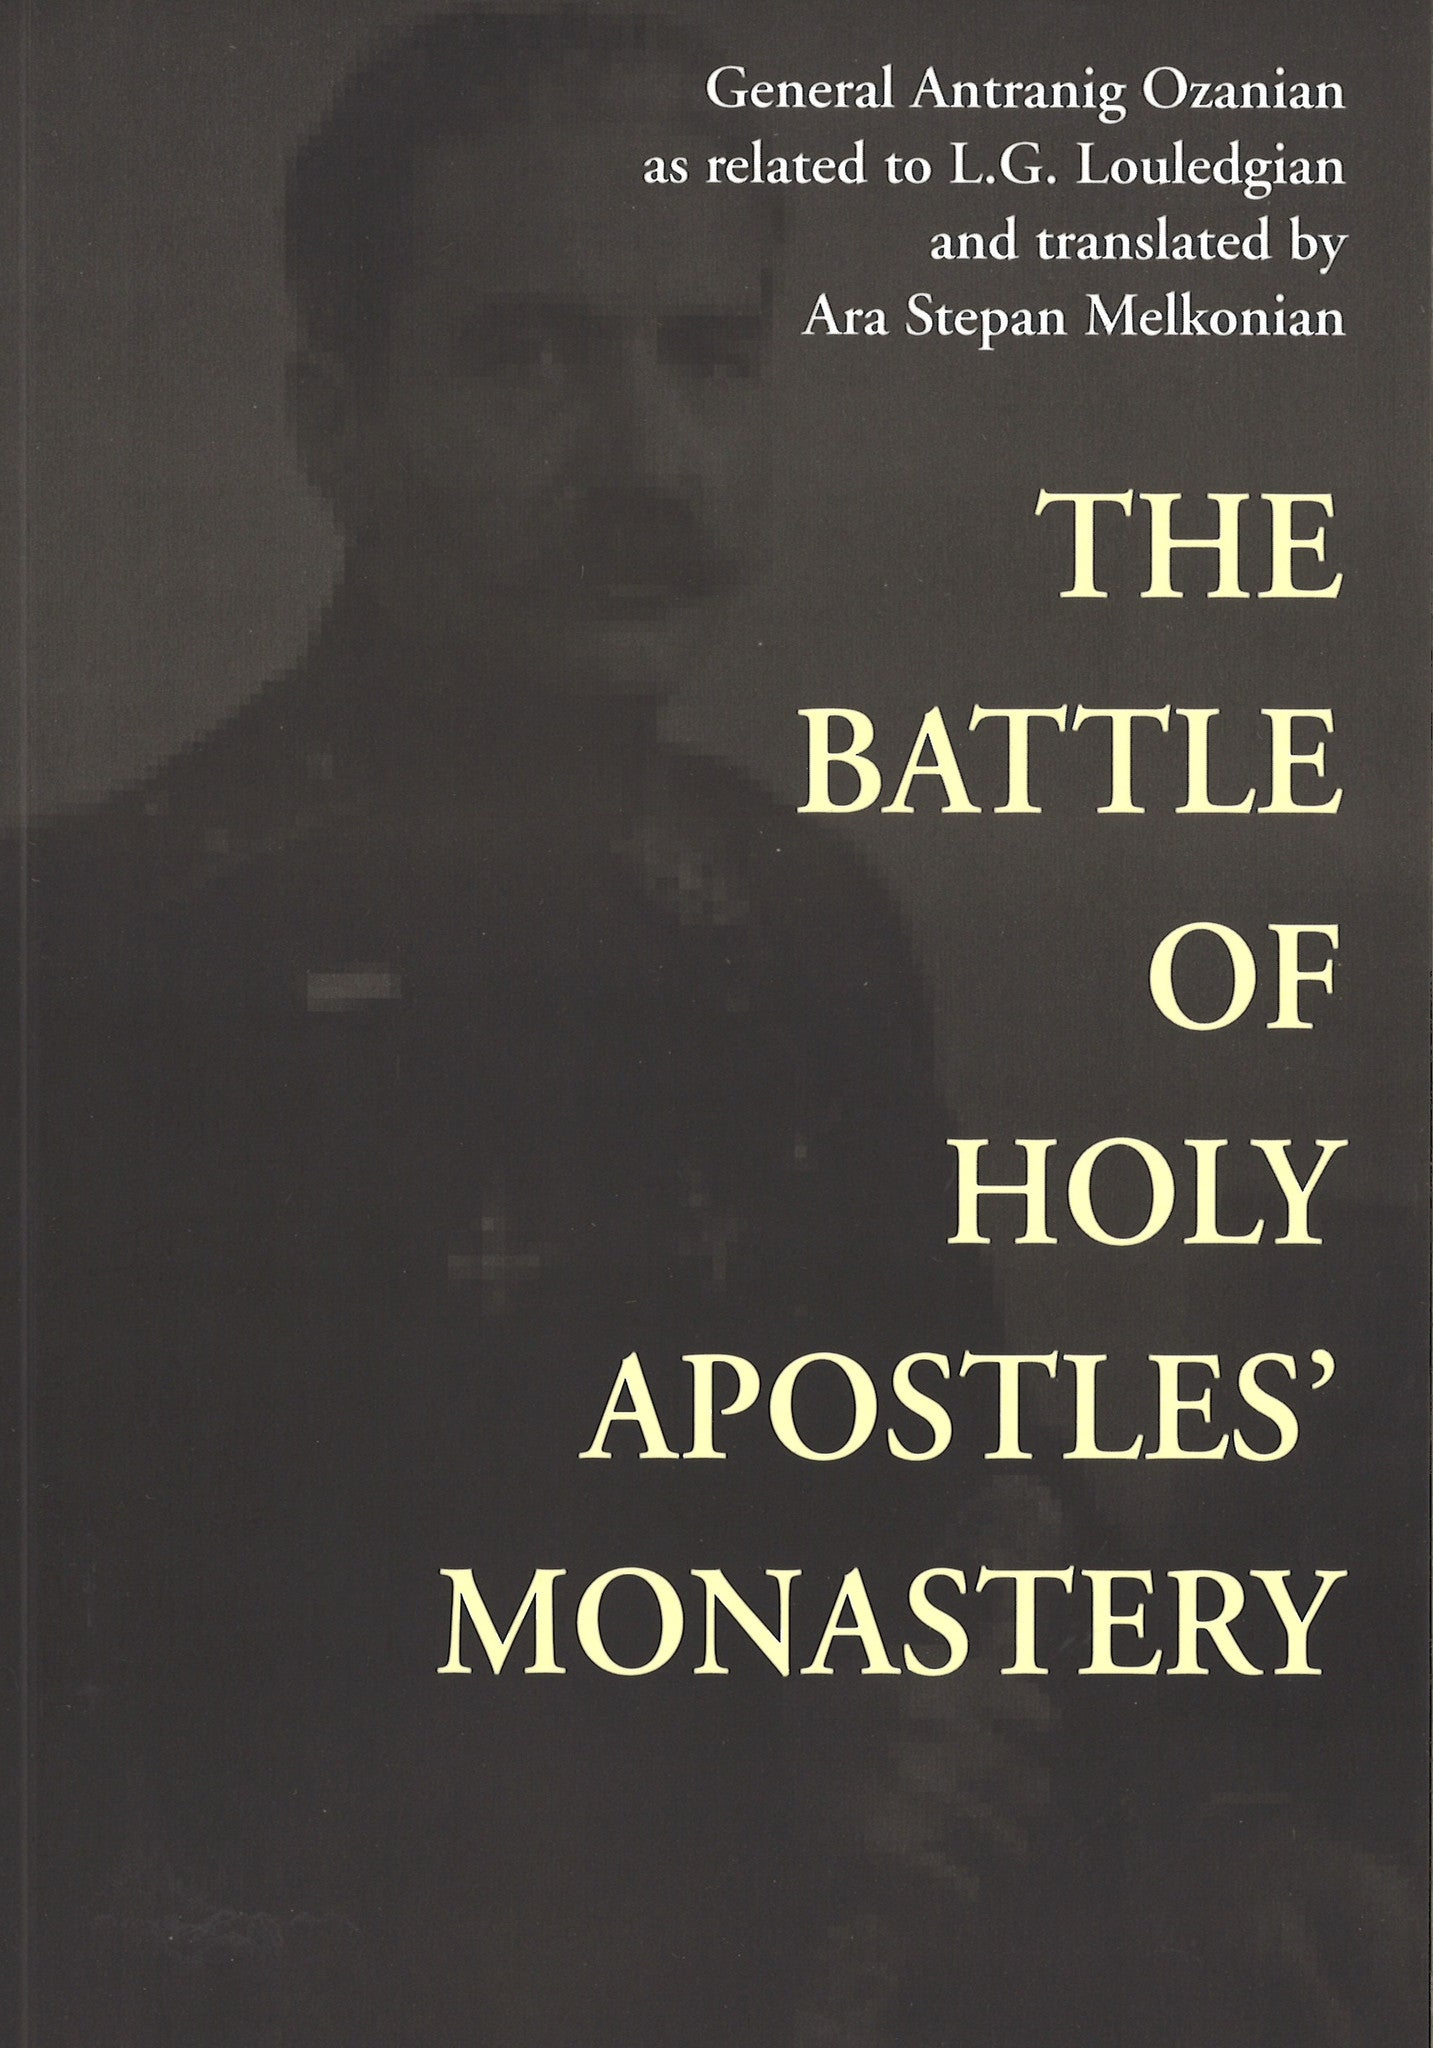 BATTLE OF HOLY APOSTLES' MONASTERY